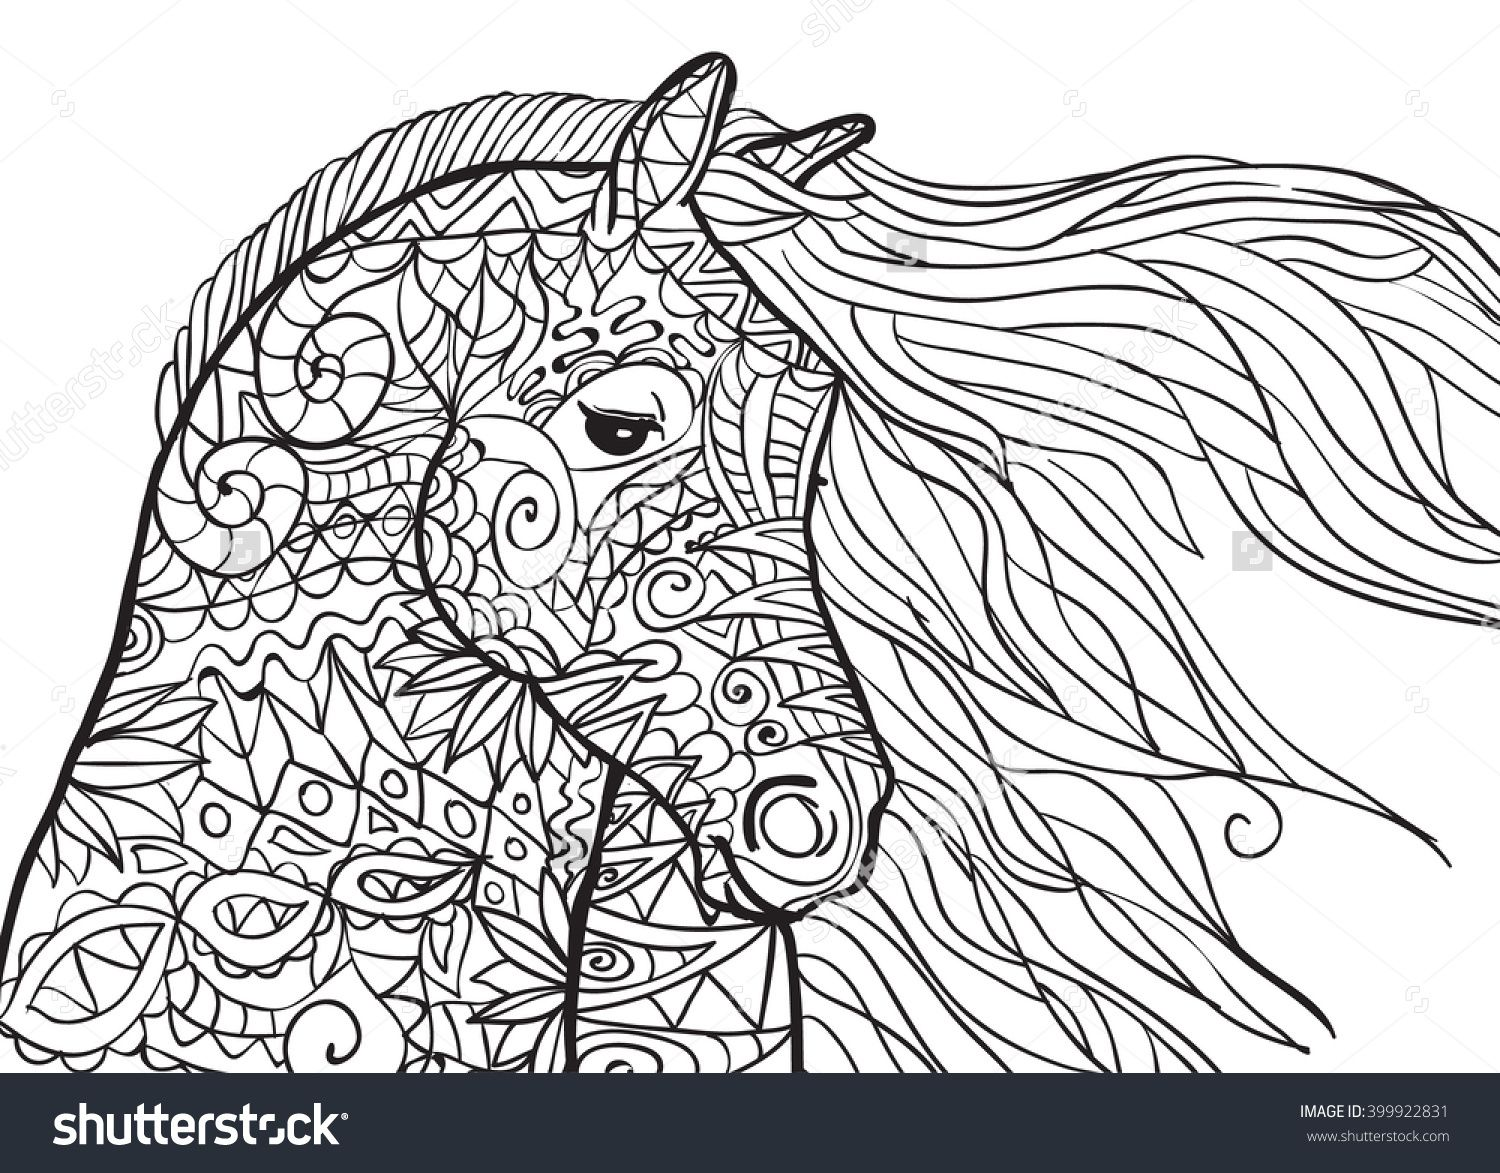 Hand Drawn Coloring Pages With Horse S Head Illustration For